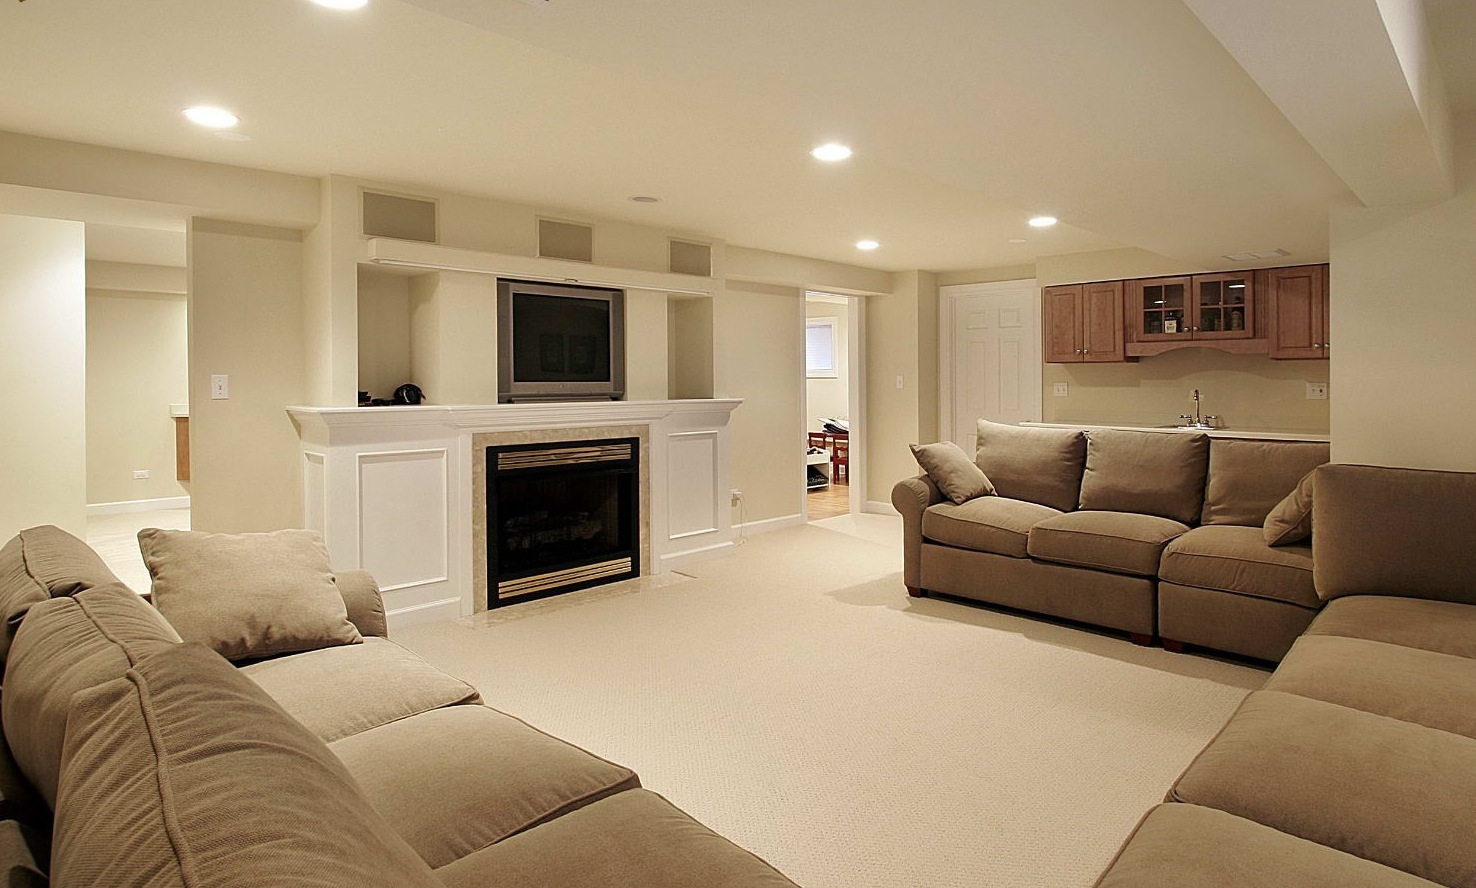 Basement Decor Ideas Basement Decor Ideas Interior Design